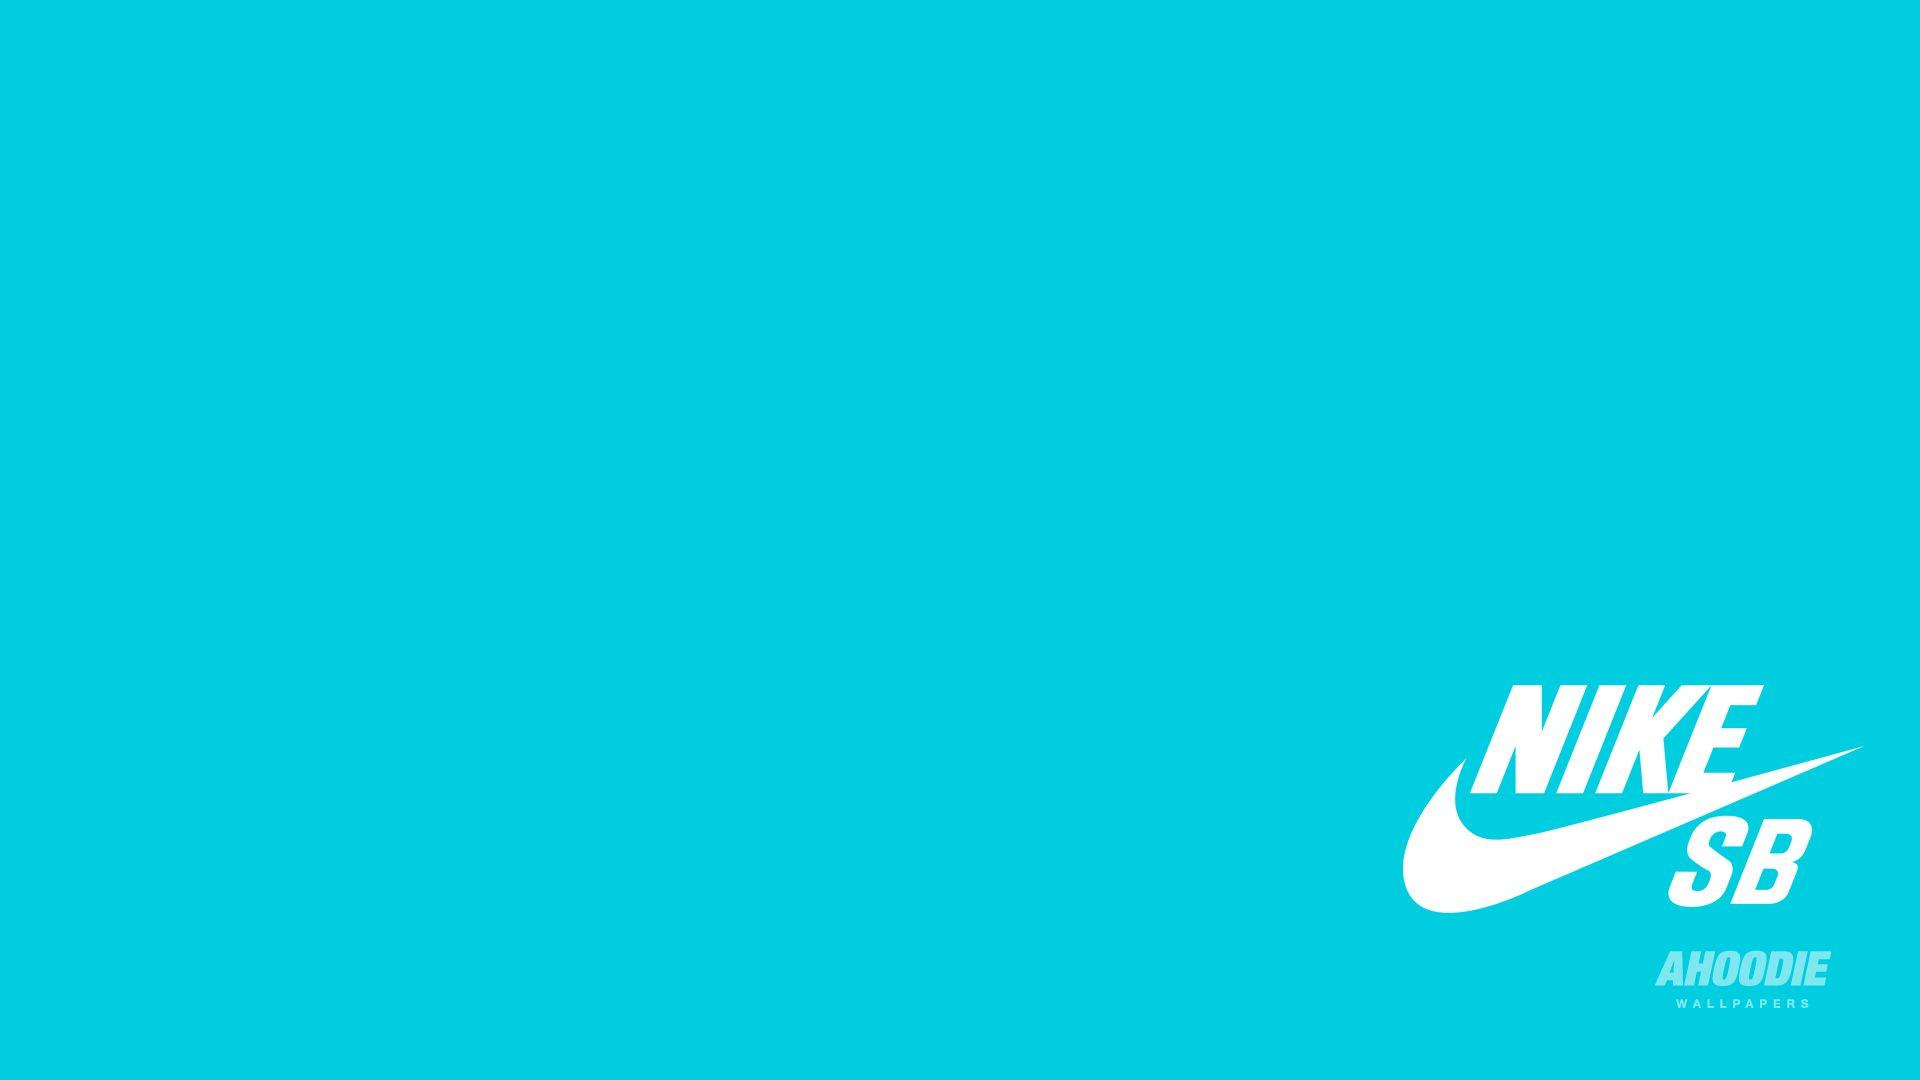 nike sb wallpaper halcyonnightscouk - photo #17